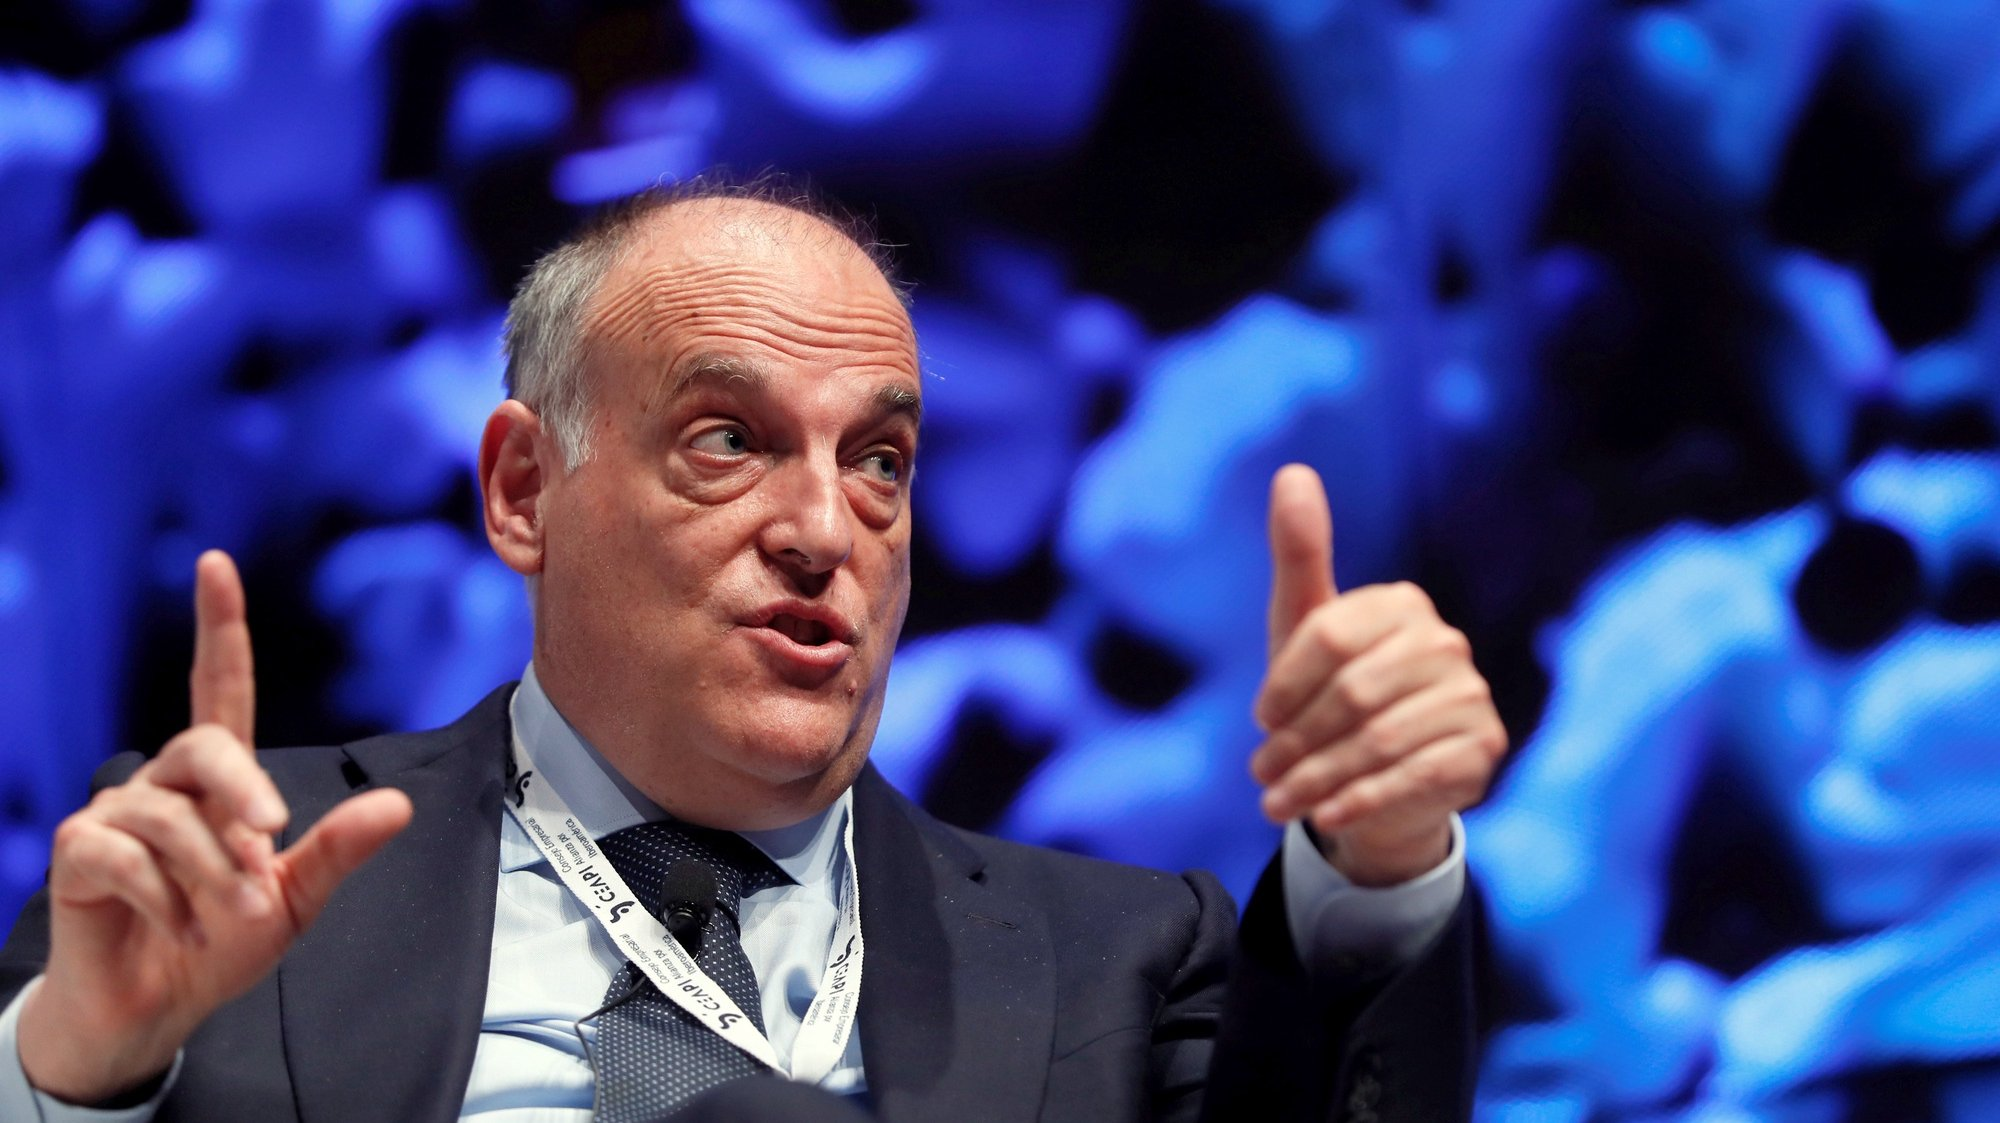 epa09206546 President of LaLiga, Spanish Soccer League, Javier Tebas takes part in  the 4th Congress of the Ibero-American Business Council Alliance (CEAPI) in Madrid, Spain, 17 May 2021.  EPA/MARISCAL